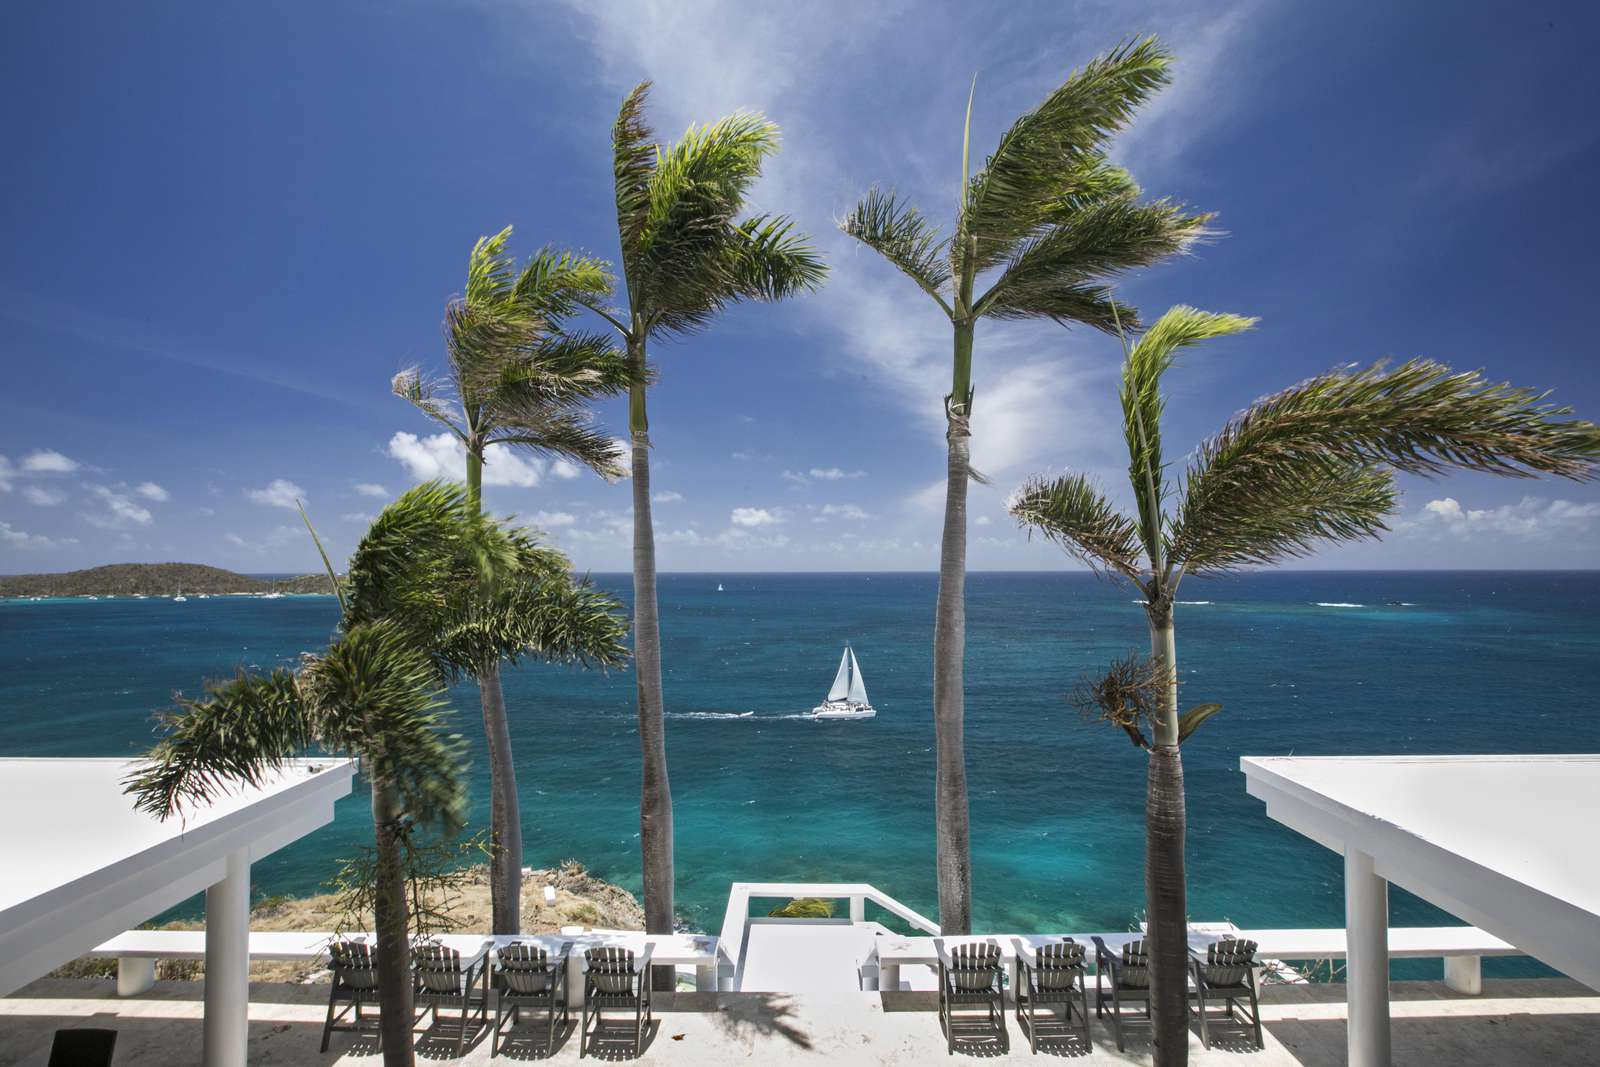 Waterfront views of the Caribbean Sea and surrounding islands